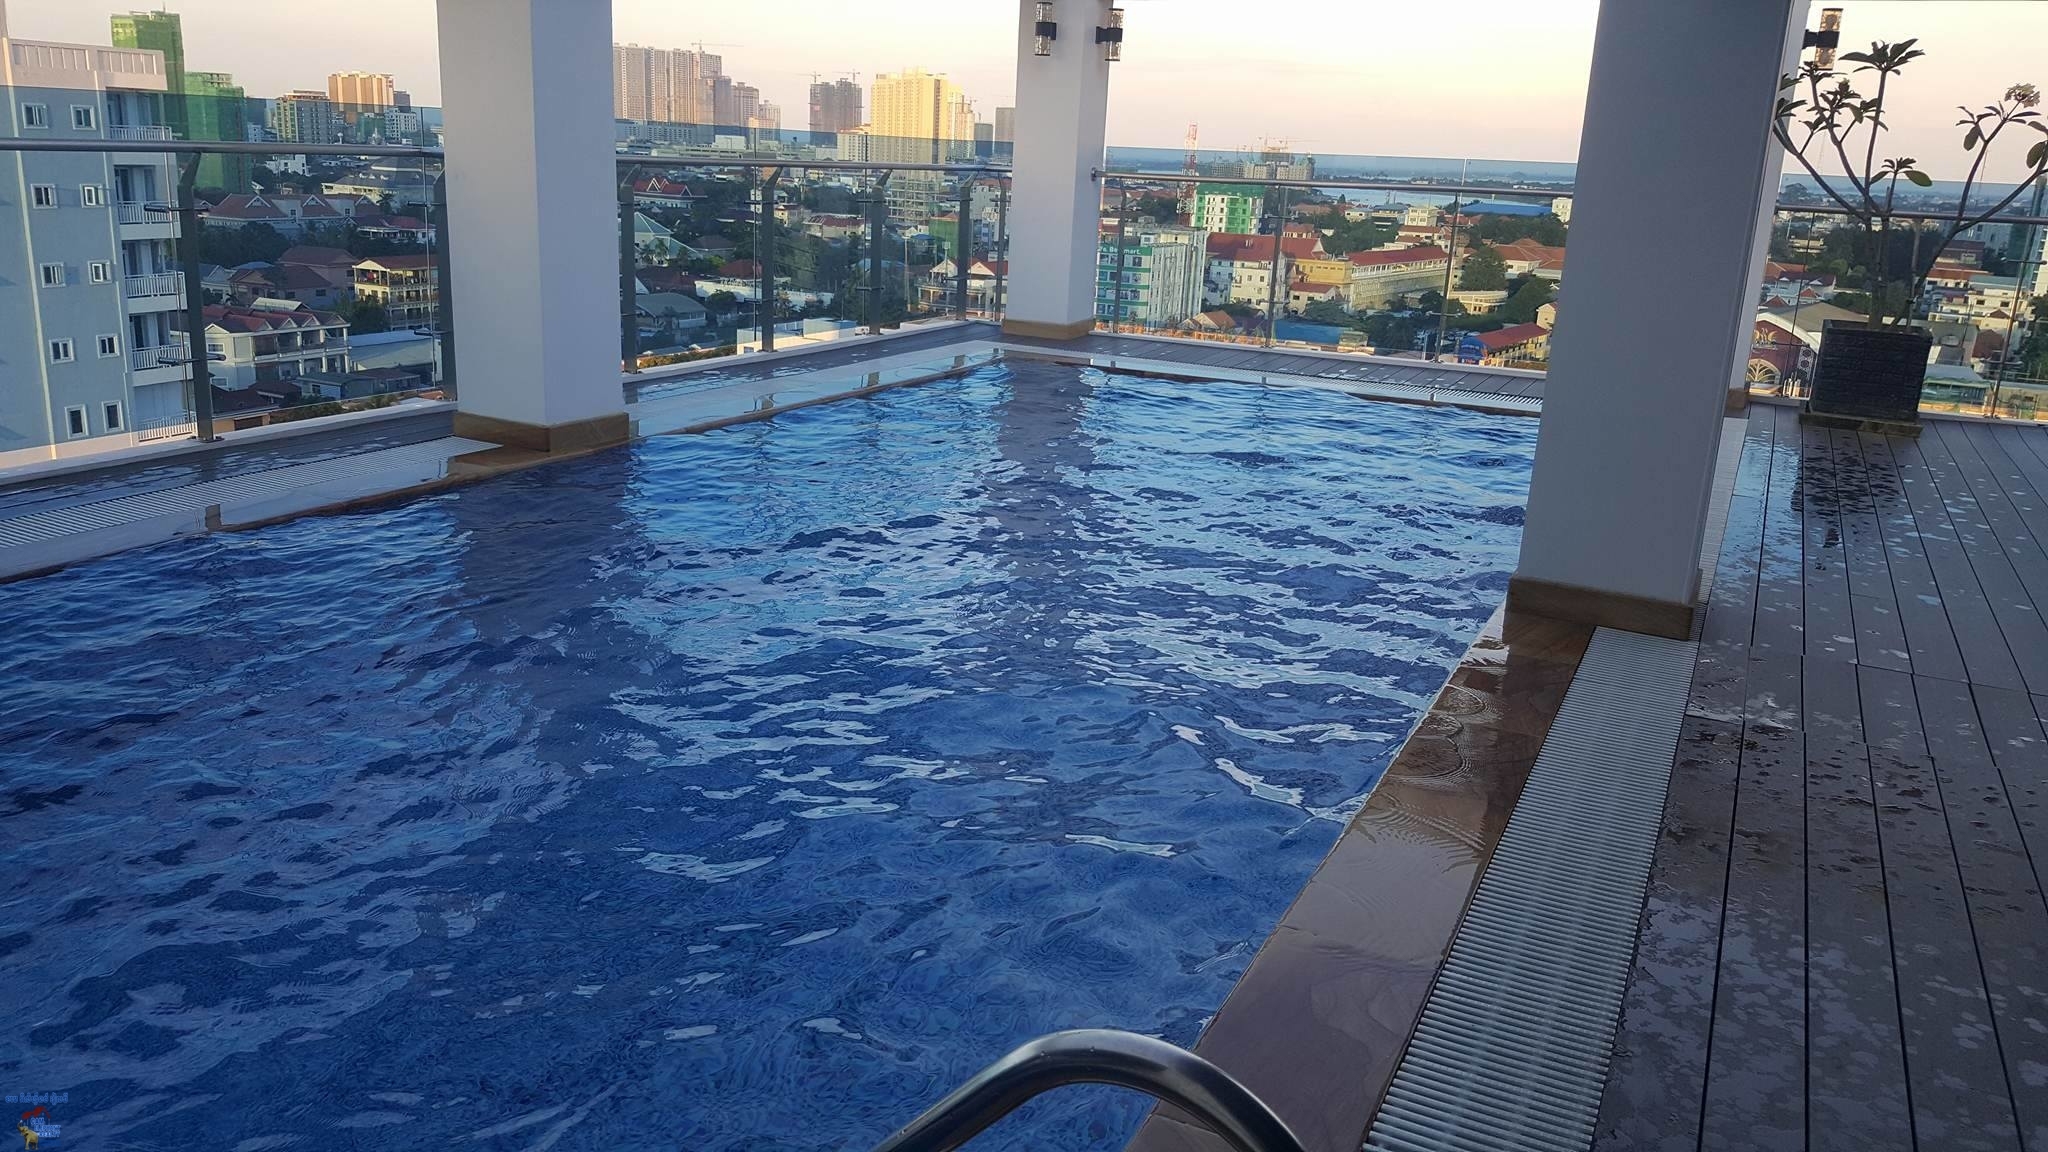 Modern Pool & Gym Apartment For Rent In BKK3,1 Bedroom=$450/M